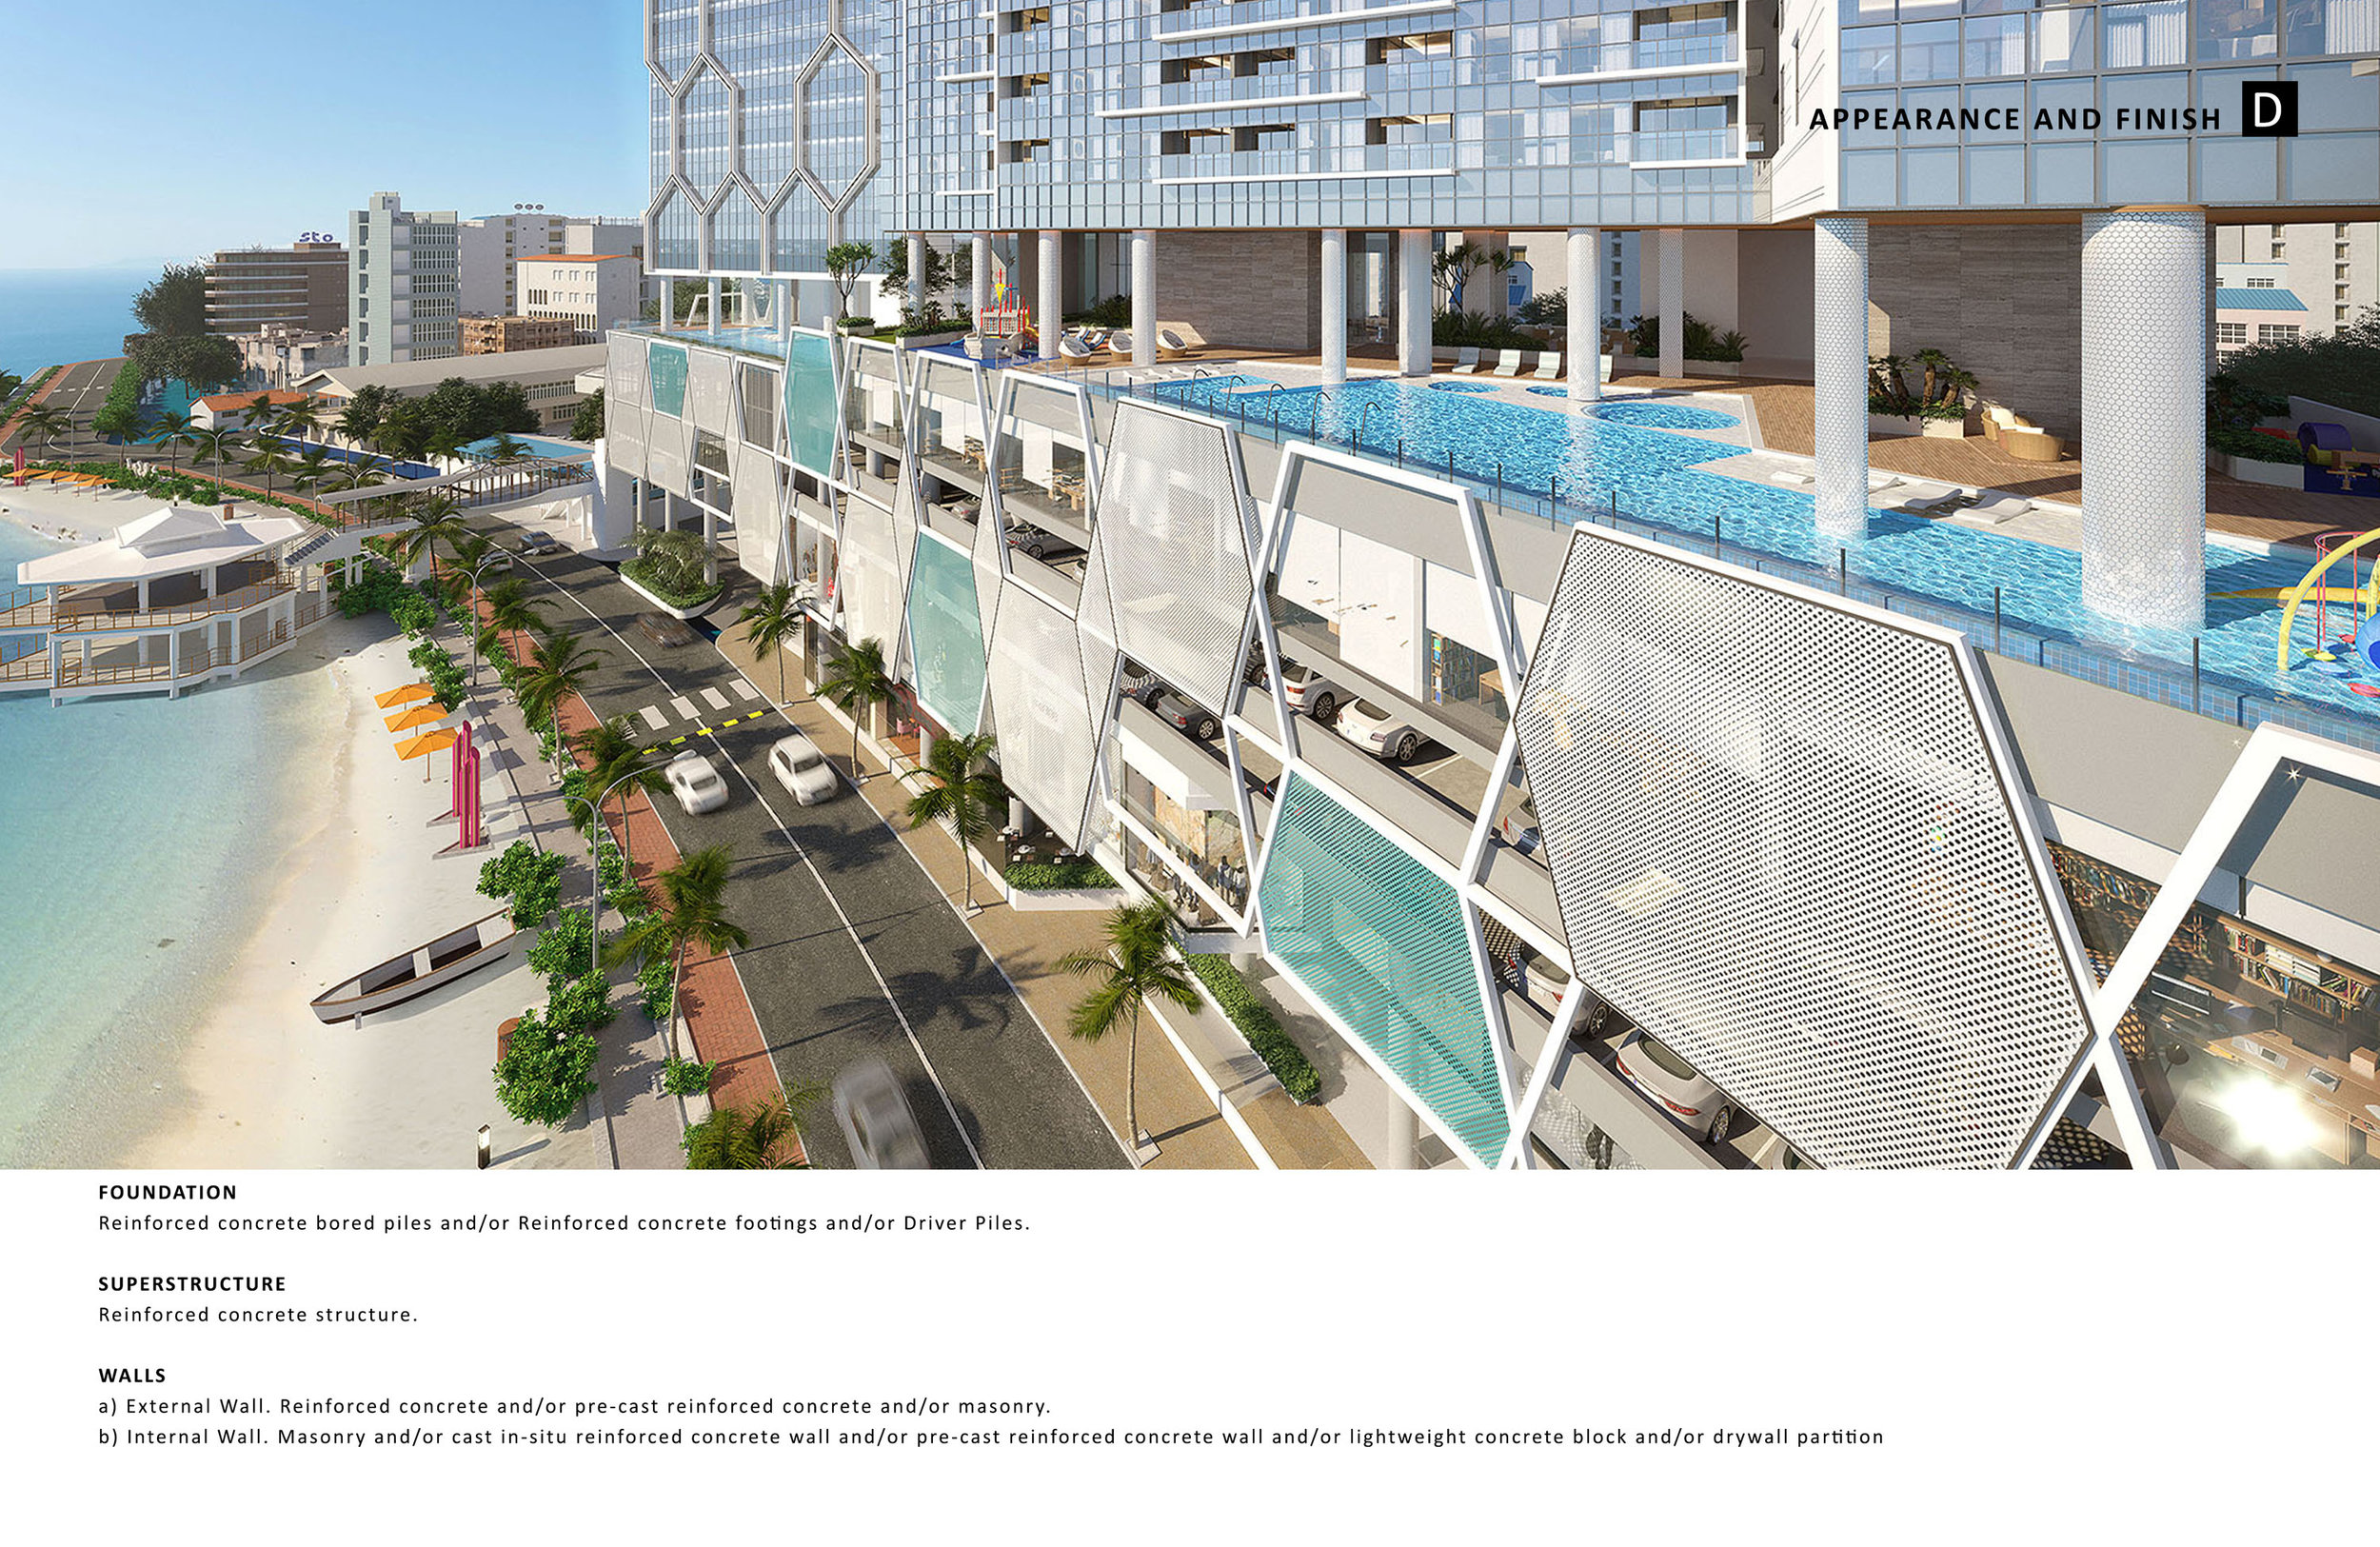 IPA_Coral Boulevard_pages_D-1.jpg